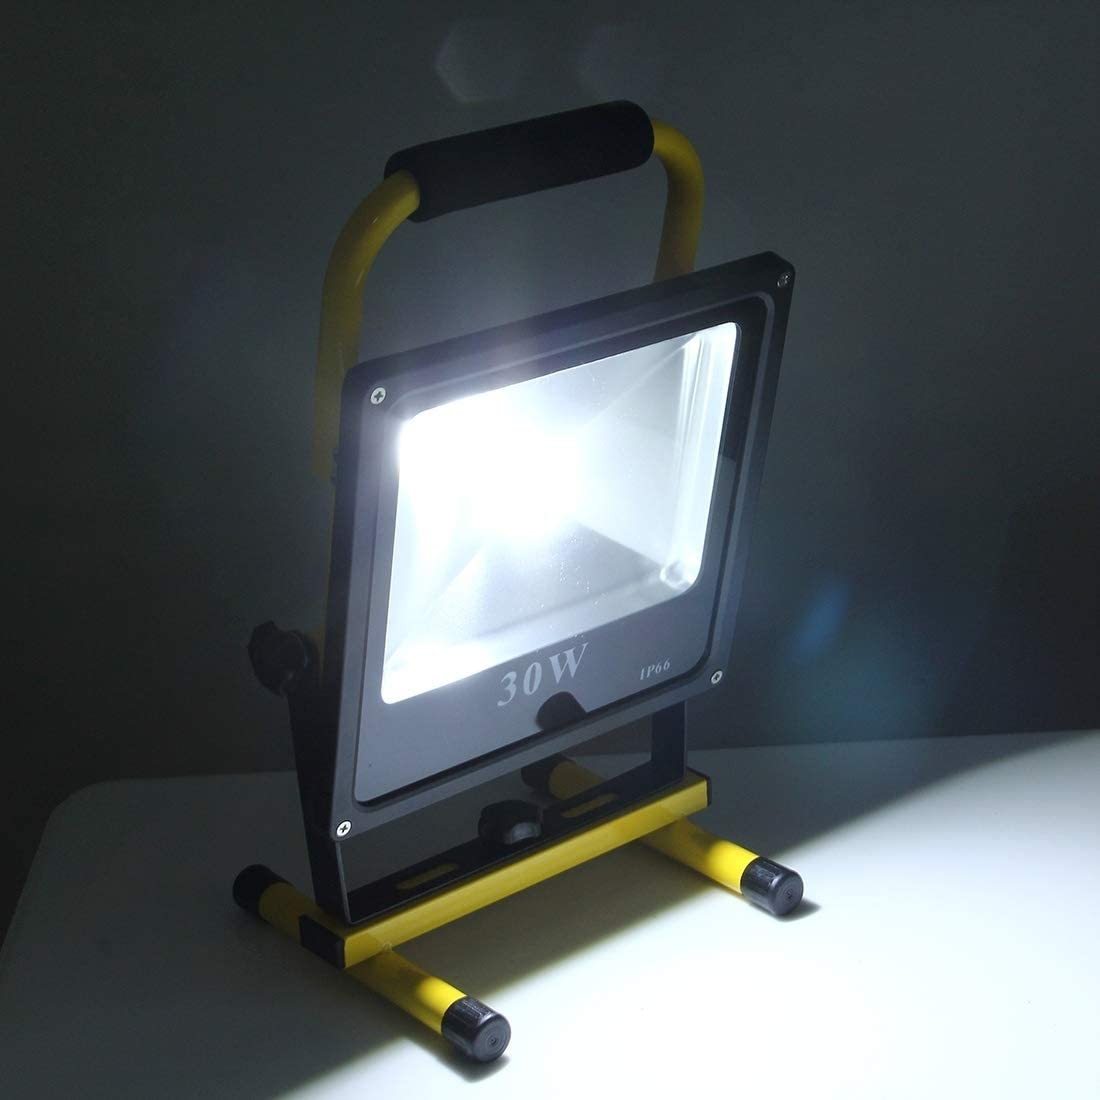 ISDY 30W 2700LM Lifesaving Waterproof LED Rechargeable Ultra-Thin Handheld Floodlight AC 100-240V